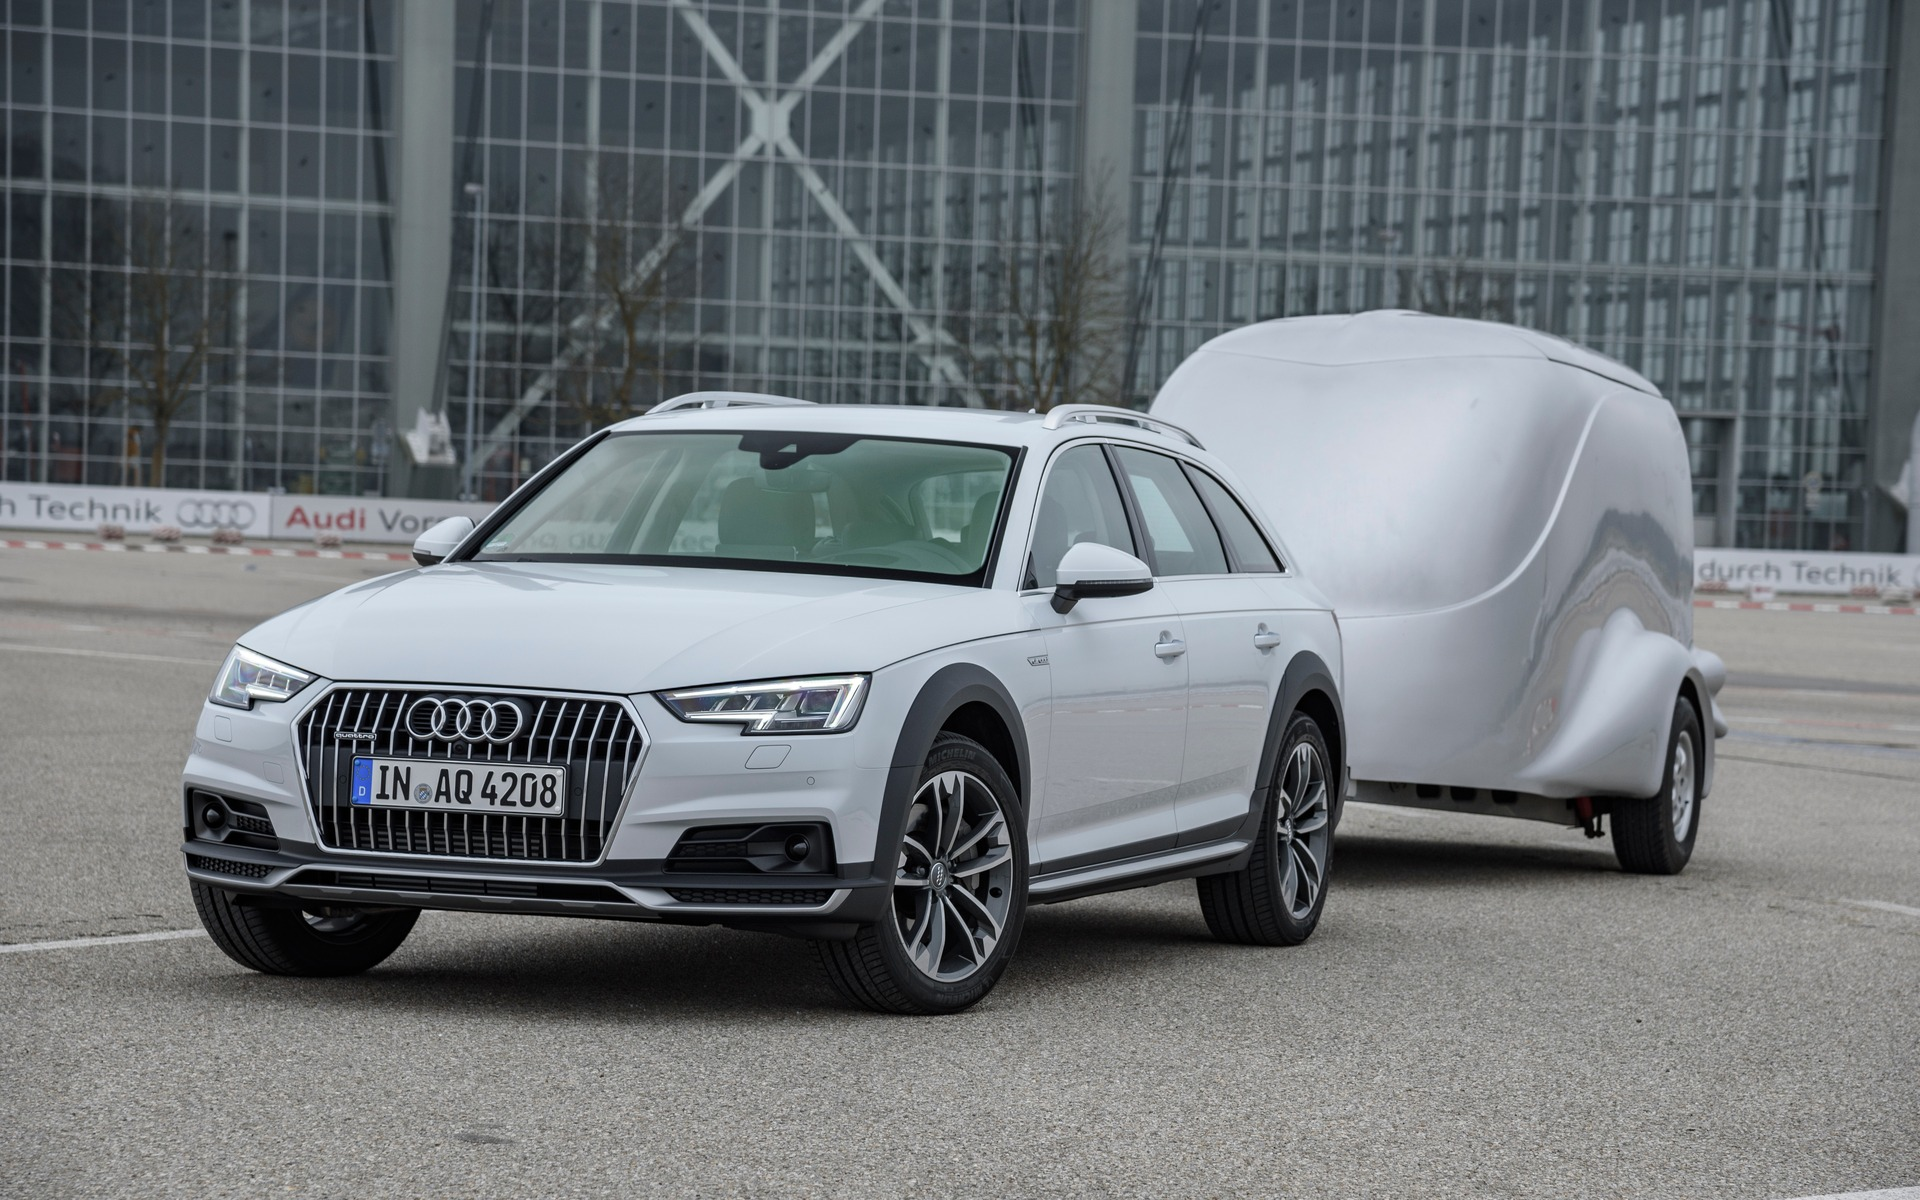 2017 Audi A4 Allroad The Suv Alternative For Connoisseurs